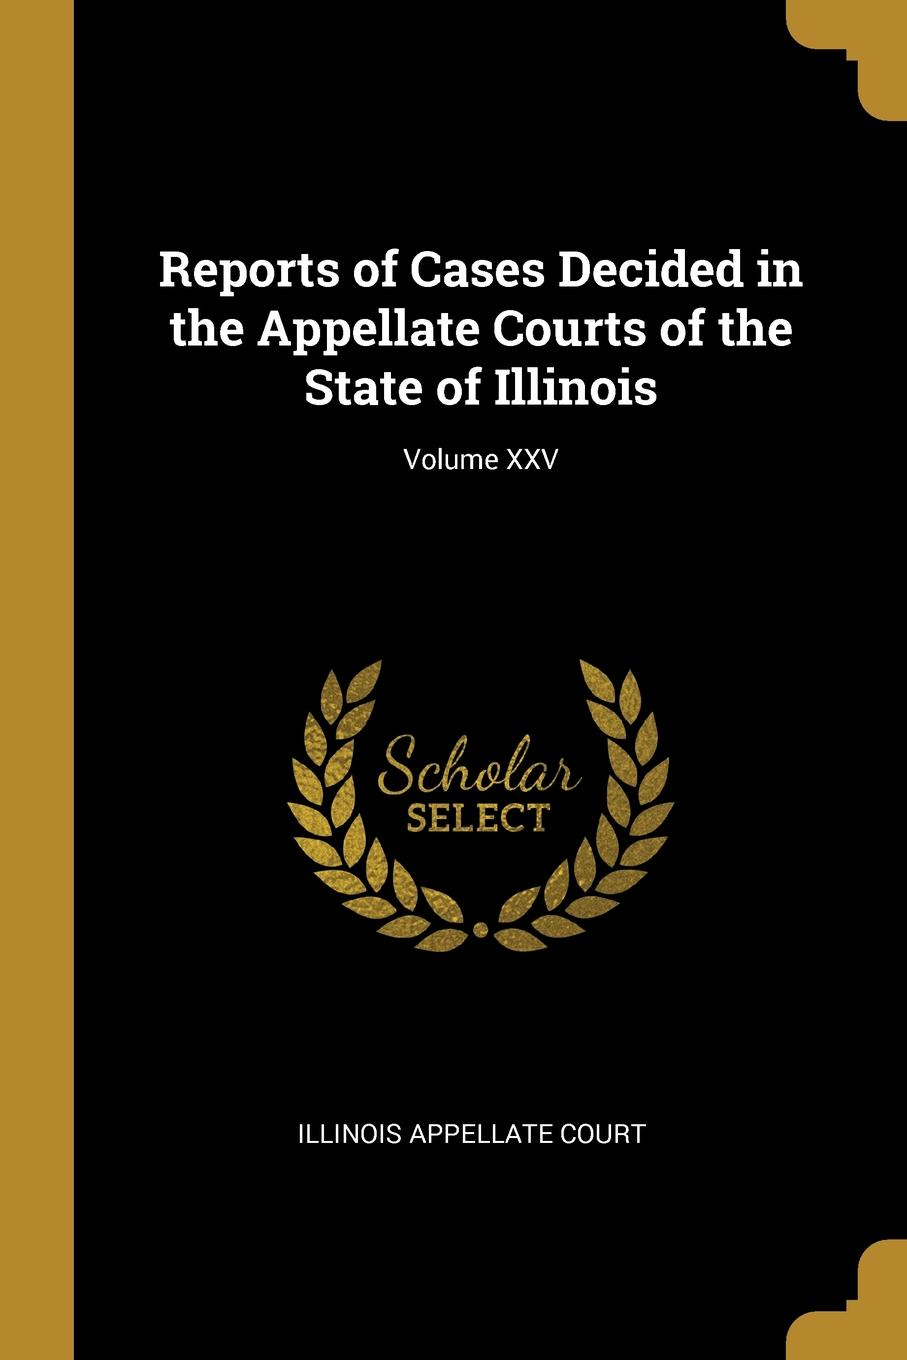 Illinois Appellate Court Reports of Cases Decided in the Appellate Courts of the State of Illinois; Volume XXV